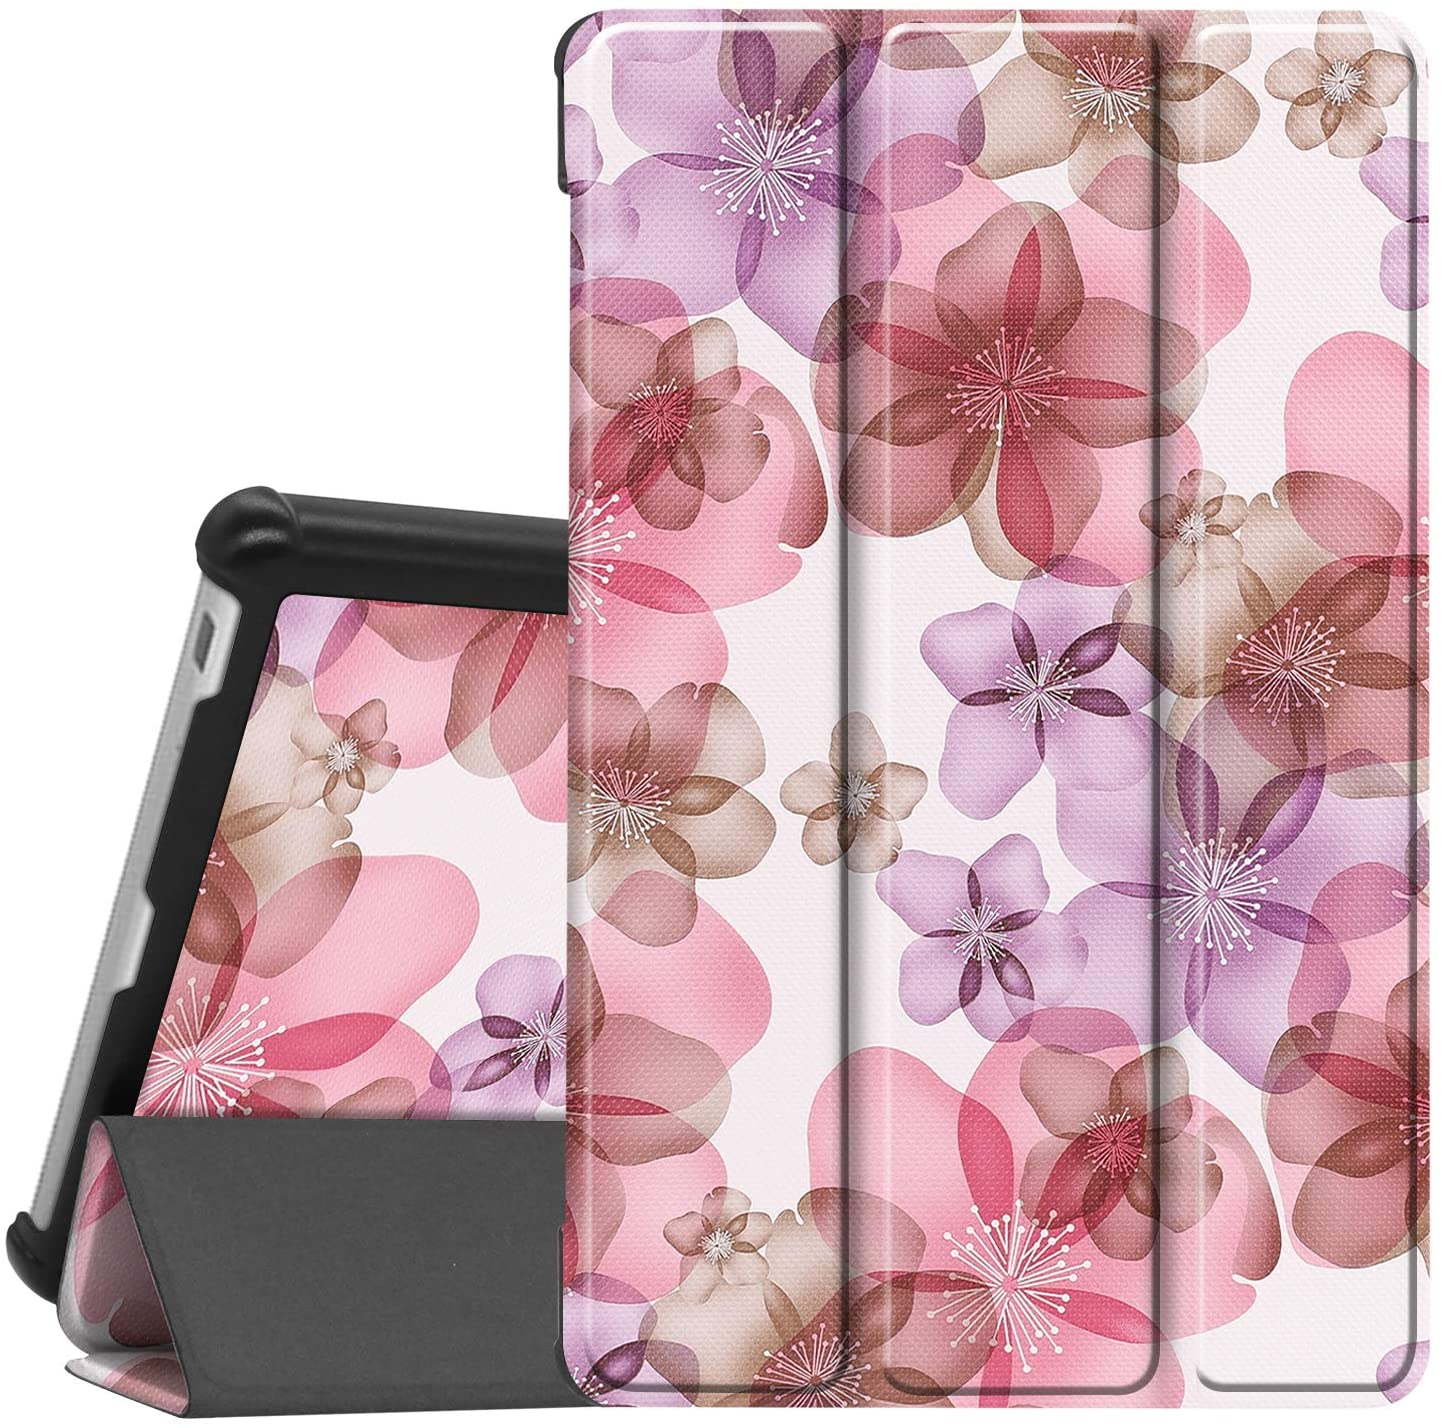 Gylint Lenovo Tab M8 Case, Smart Case Trifold Stand Slim Lightweight Case Cover for Lenovo Tab M8 FHD TB-8705F / TB-8705N / TB-8505F / TB-8505X Tablet Flower